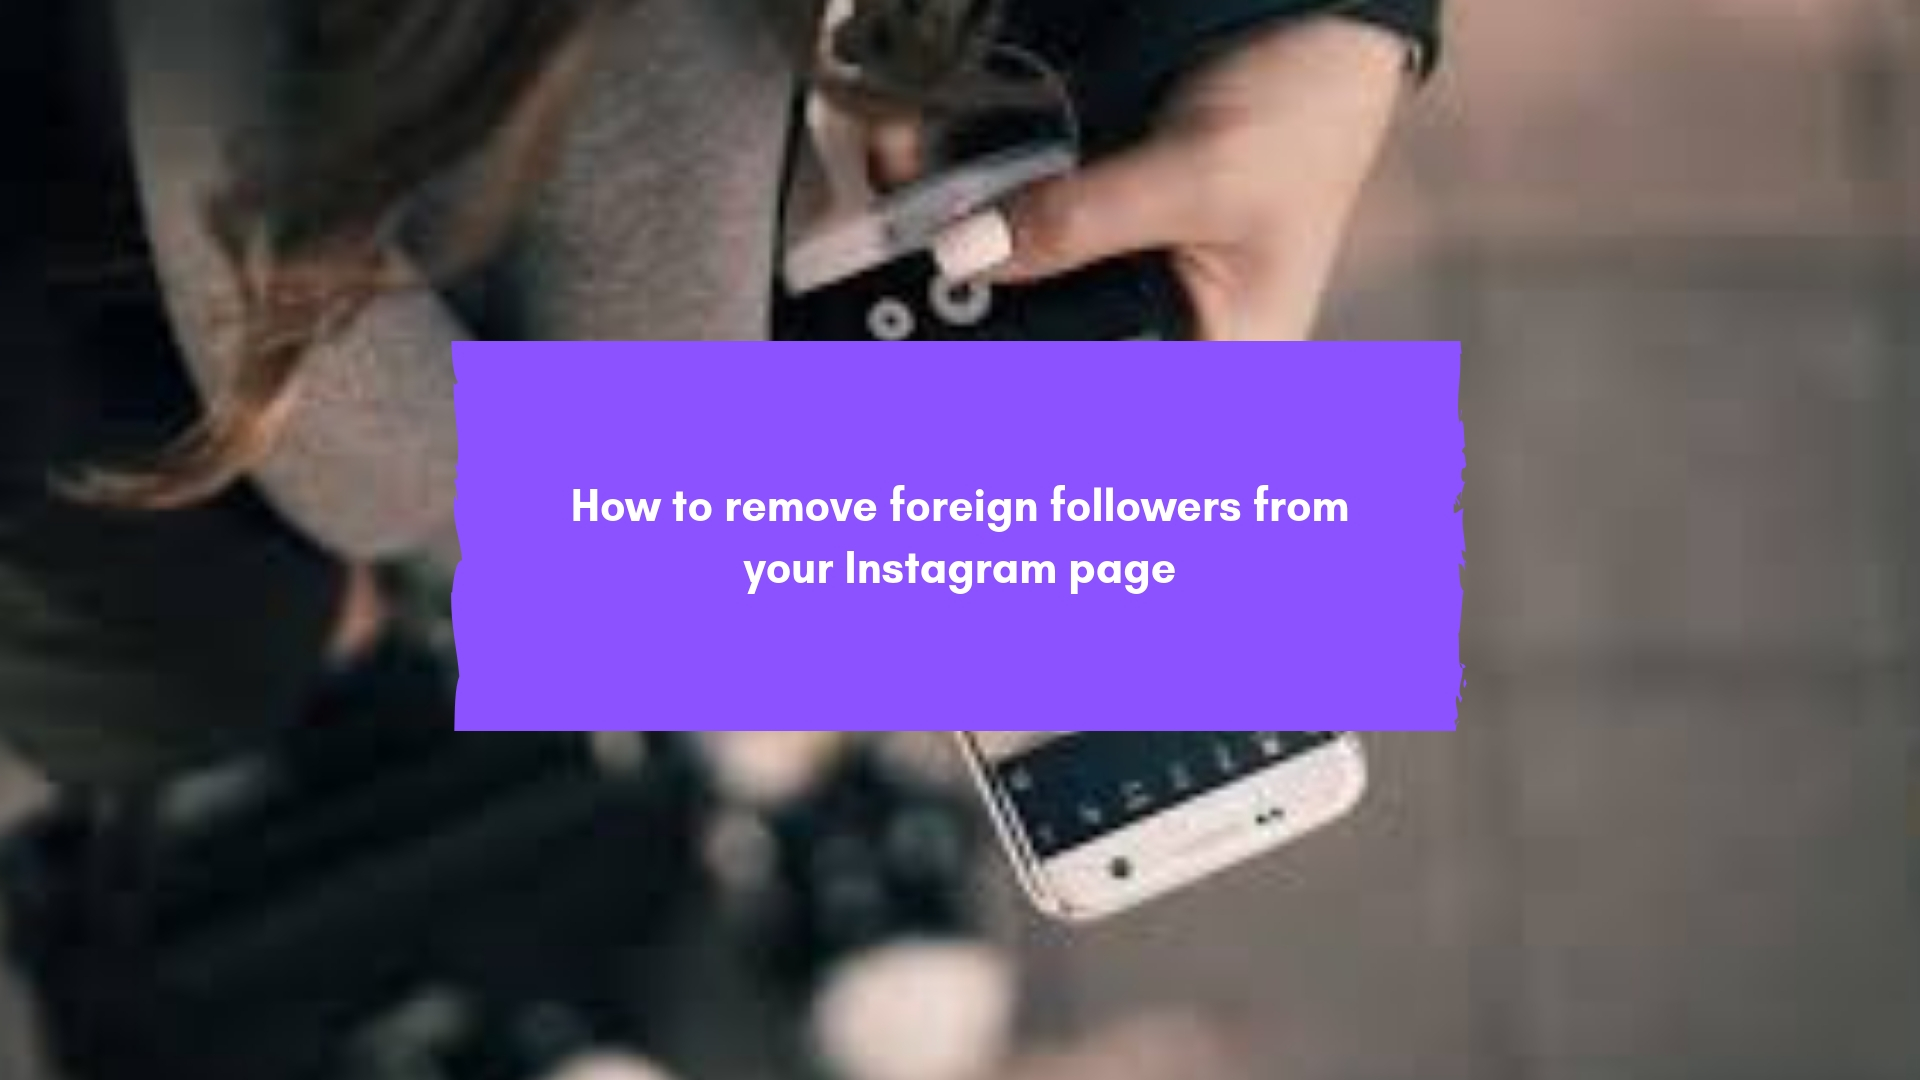 How to remove foreign followers from your Instagram page